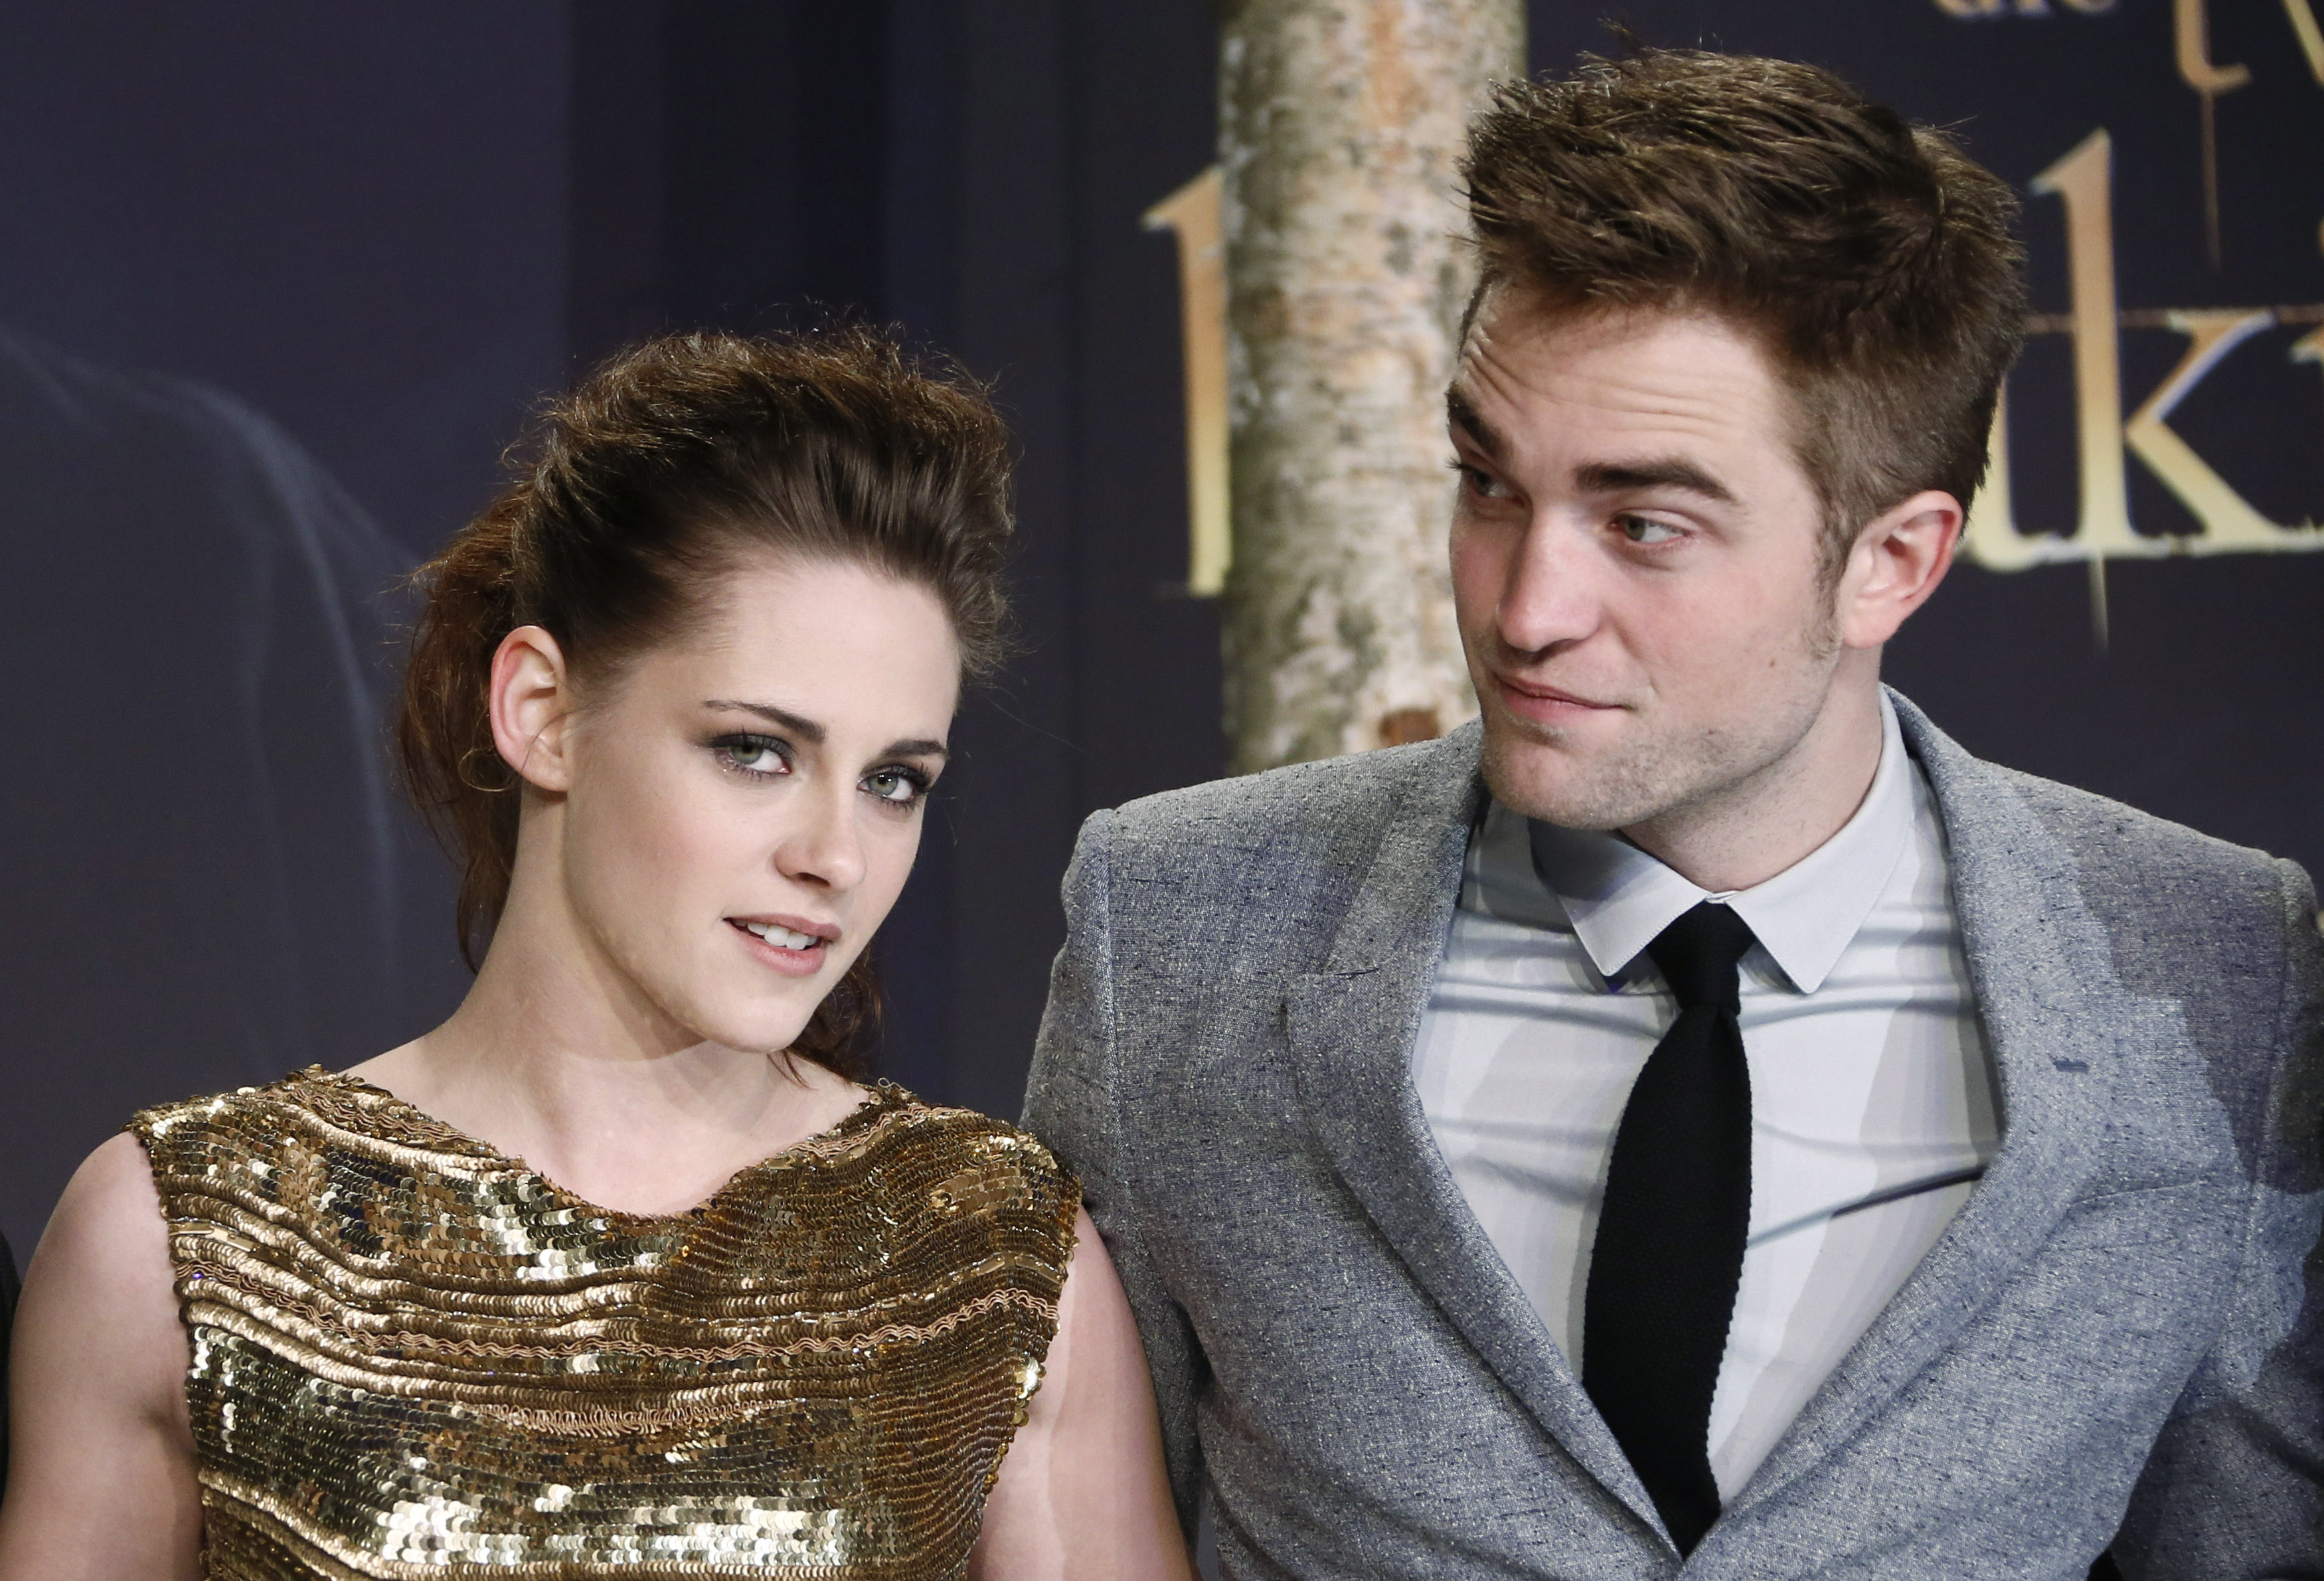 Westlake Legal Group a7d0e527-twilight-sex-scene Kristen Stewart opens up about Robert Pattinson relationship: 'It wasn't real life anymore' Julius Young fox-news/entertainment/celebrity-news fox news fnc/entertainment fnc f3709655-a879-5c2e-9907-17be17bc9aaa article